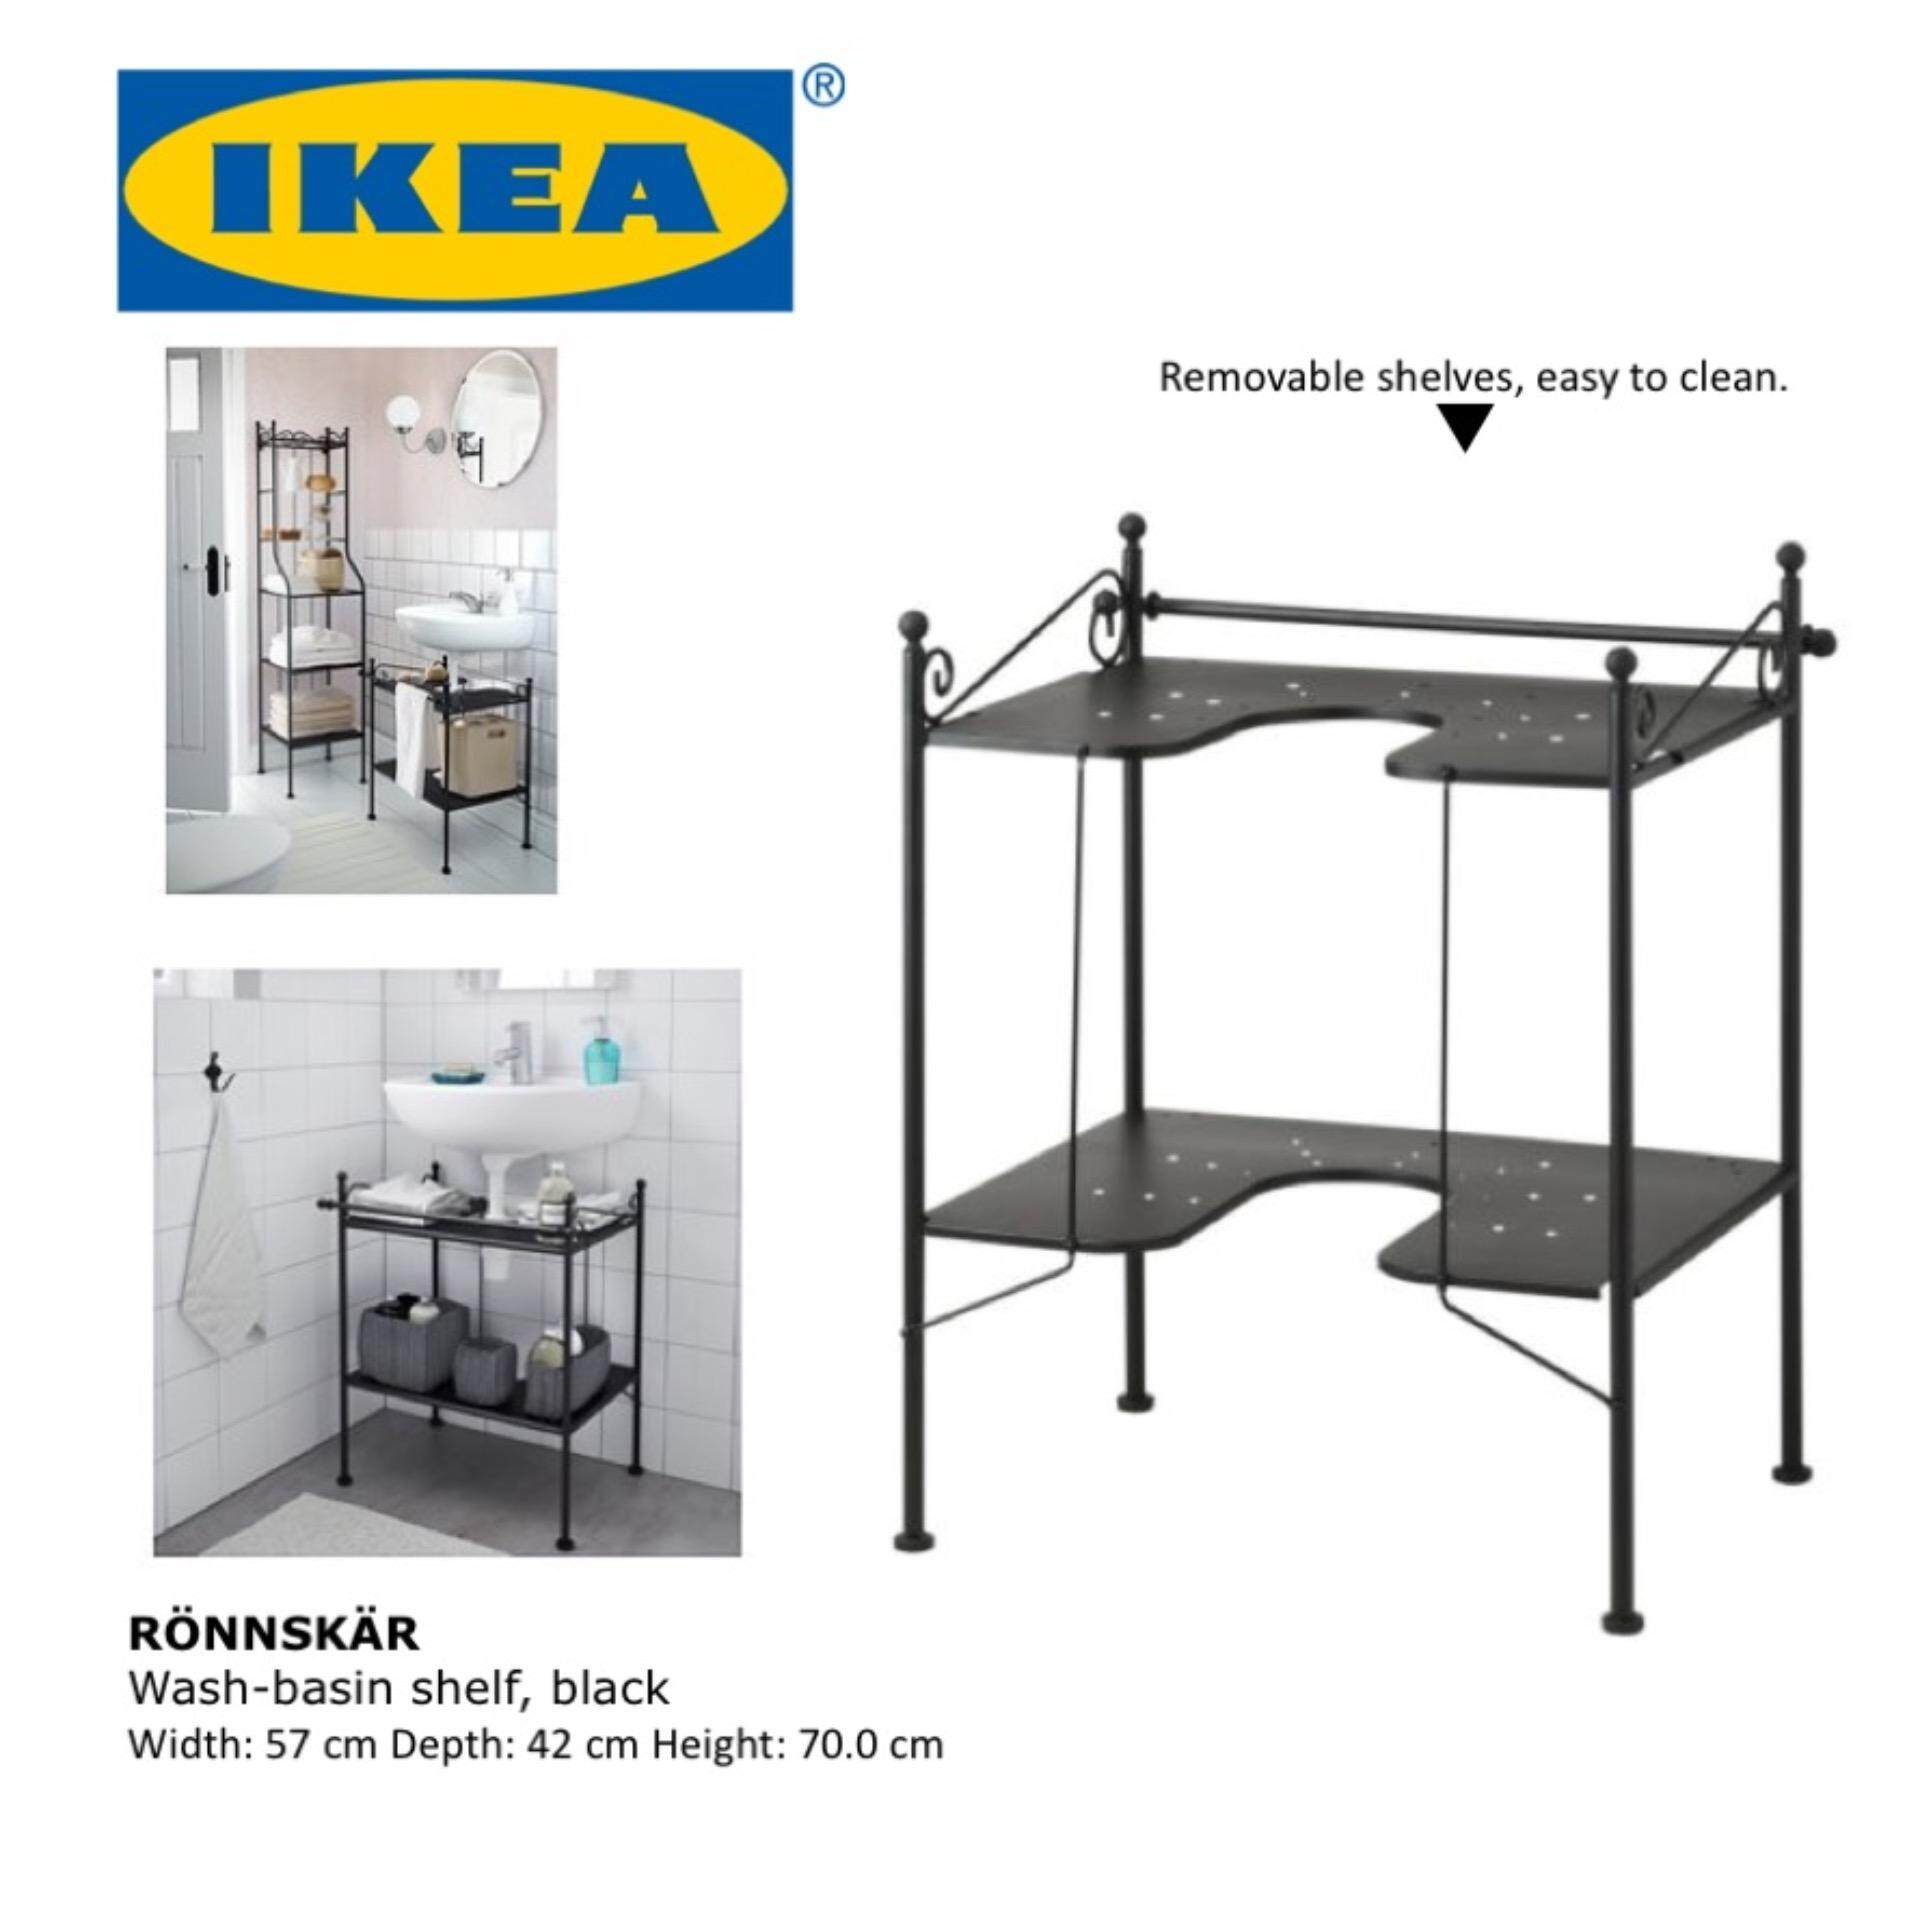 ... Ikea Under Sink Organizer Ikea Rönnskär Wash Basin Shelf Bathroom  Storage Shelve Under Sink ...